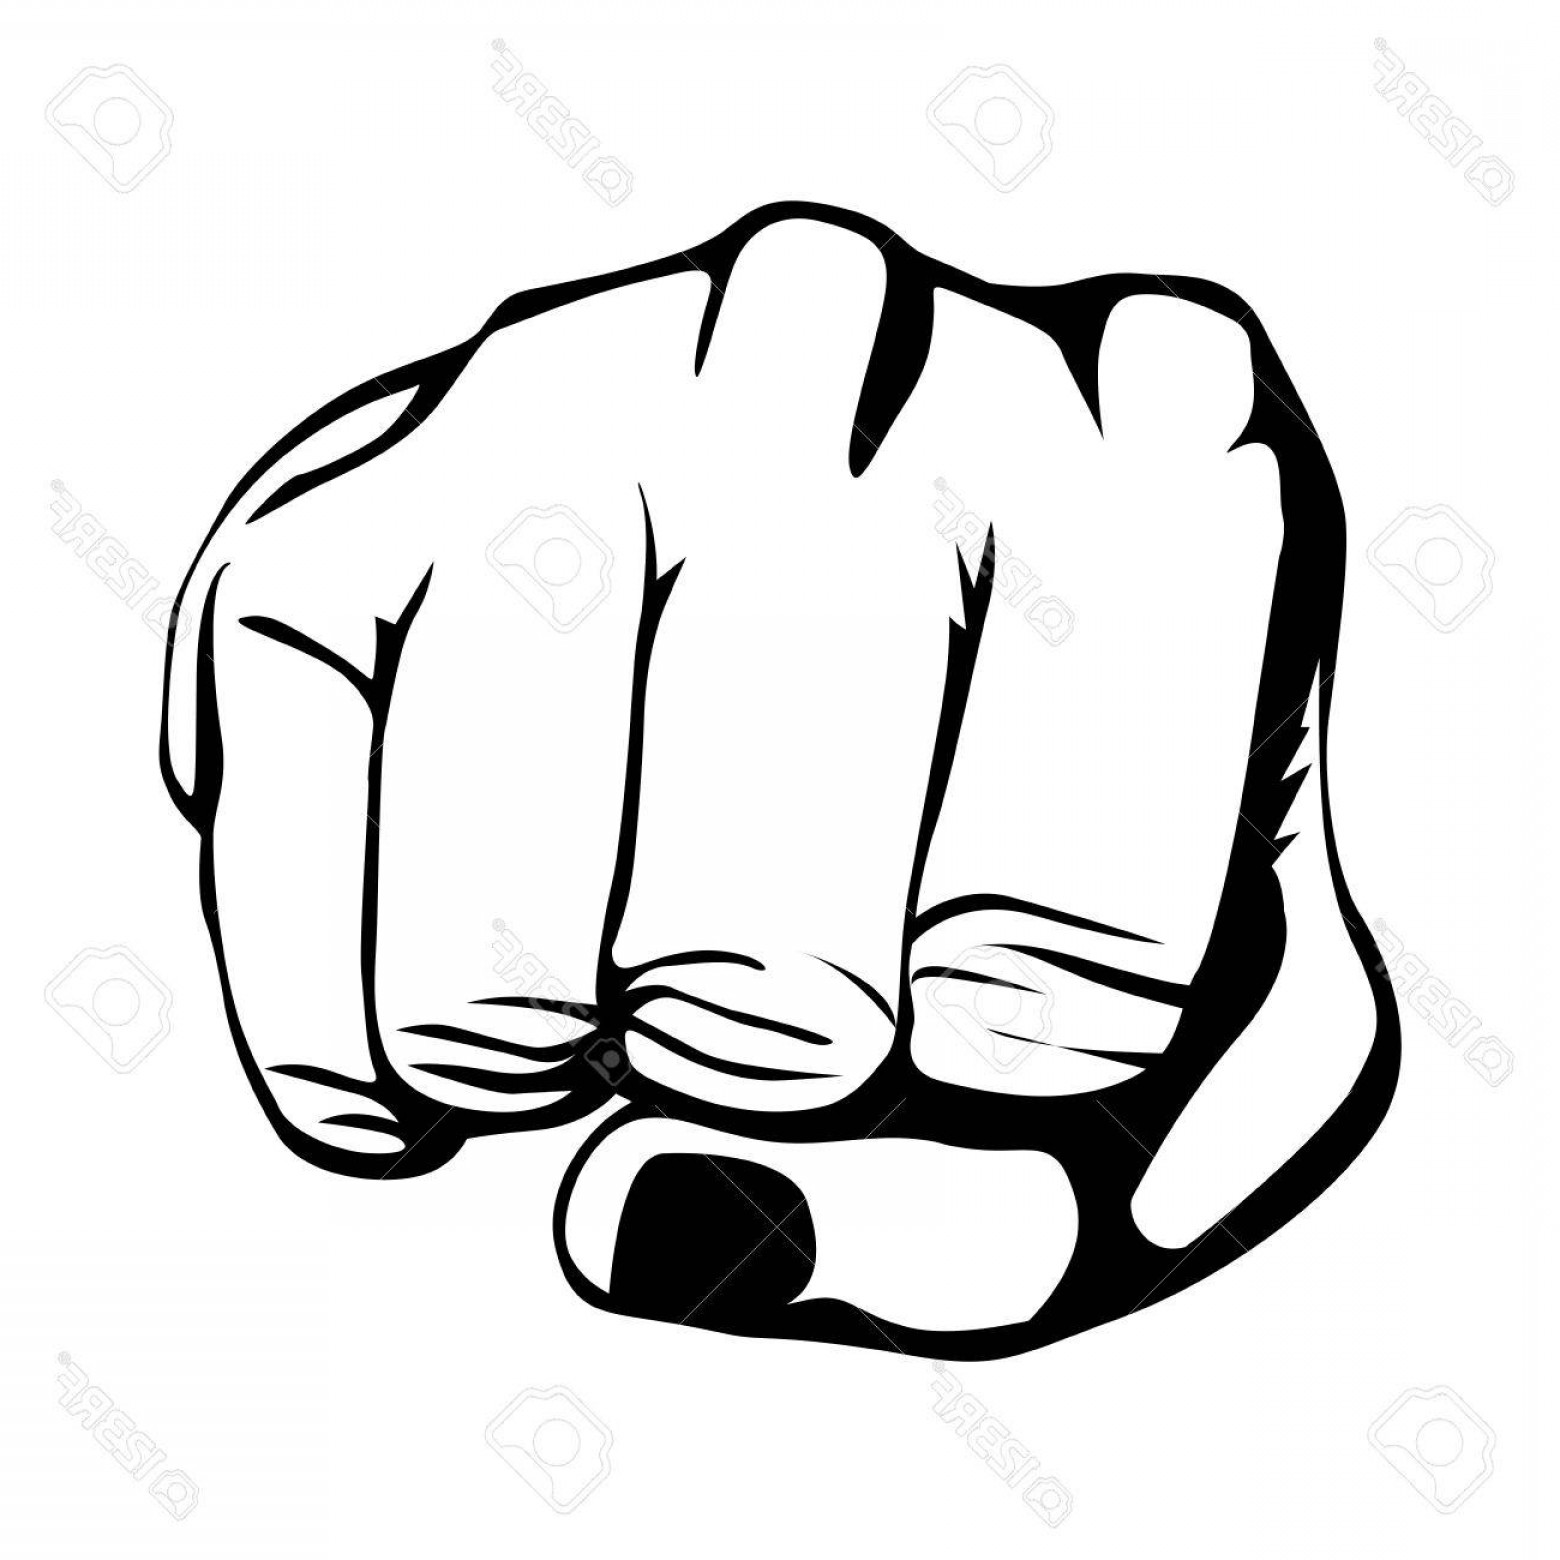 Hand Fist Vector: Photostock Vector Clenched Fist Hand Gesture Icon Image Vector Illustration